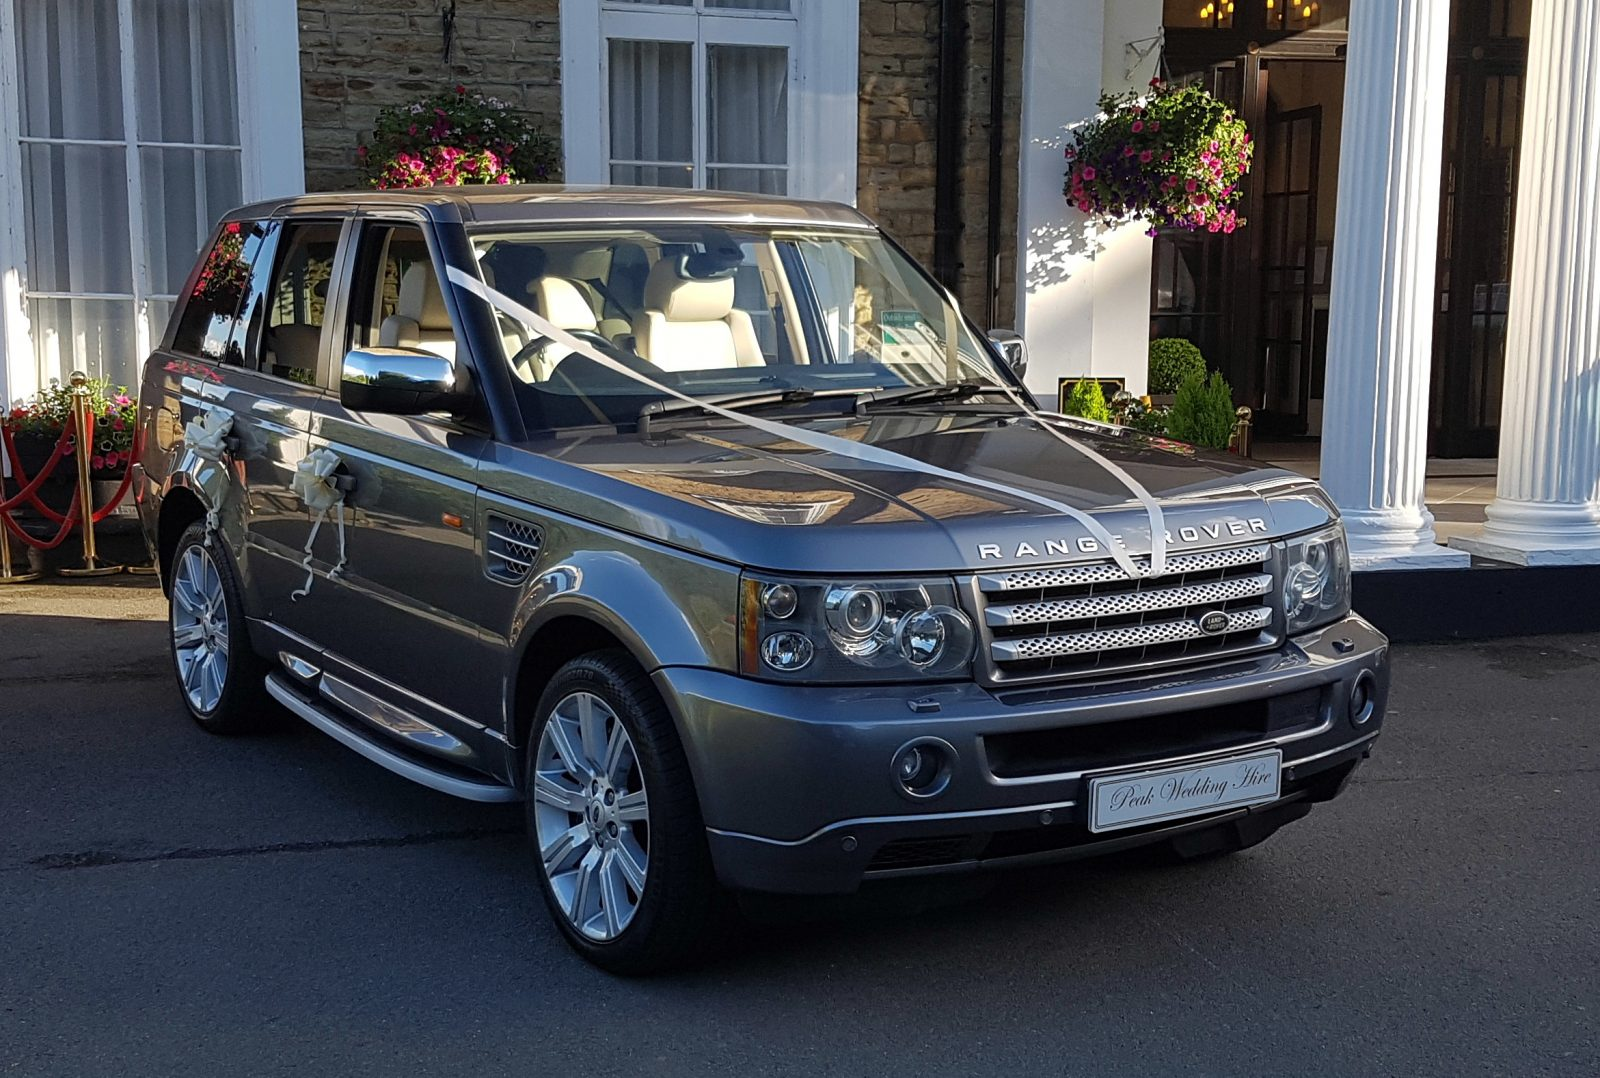 range rover sport wedding car hire